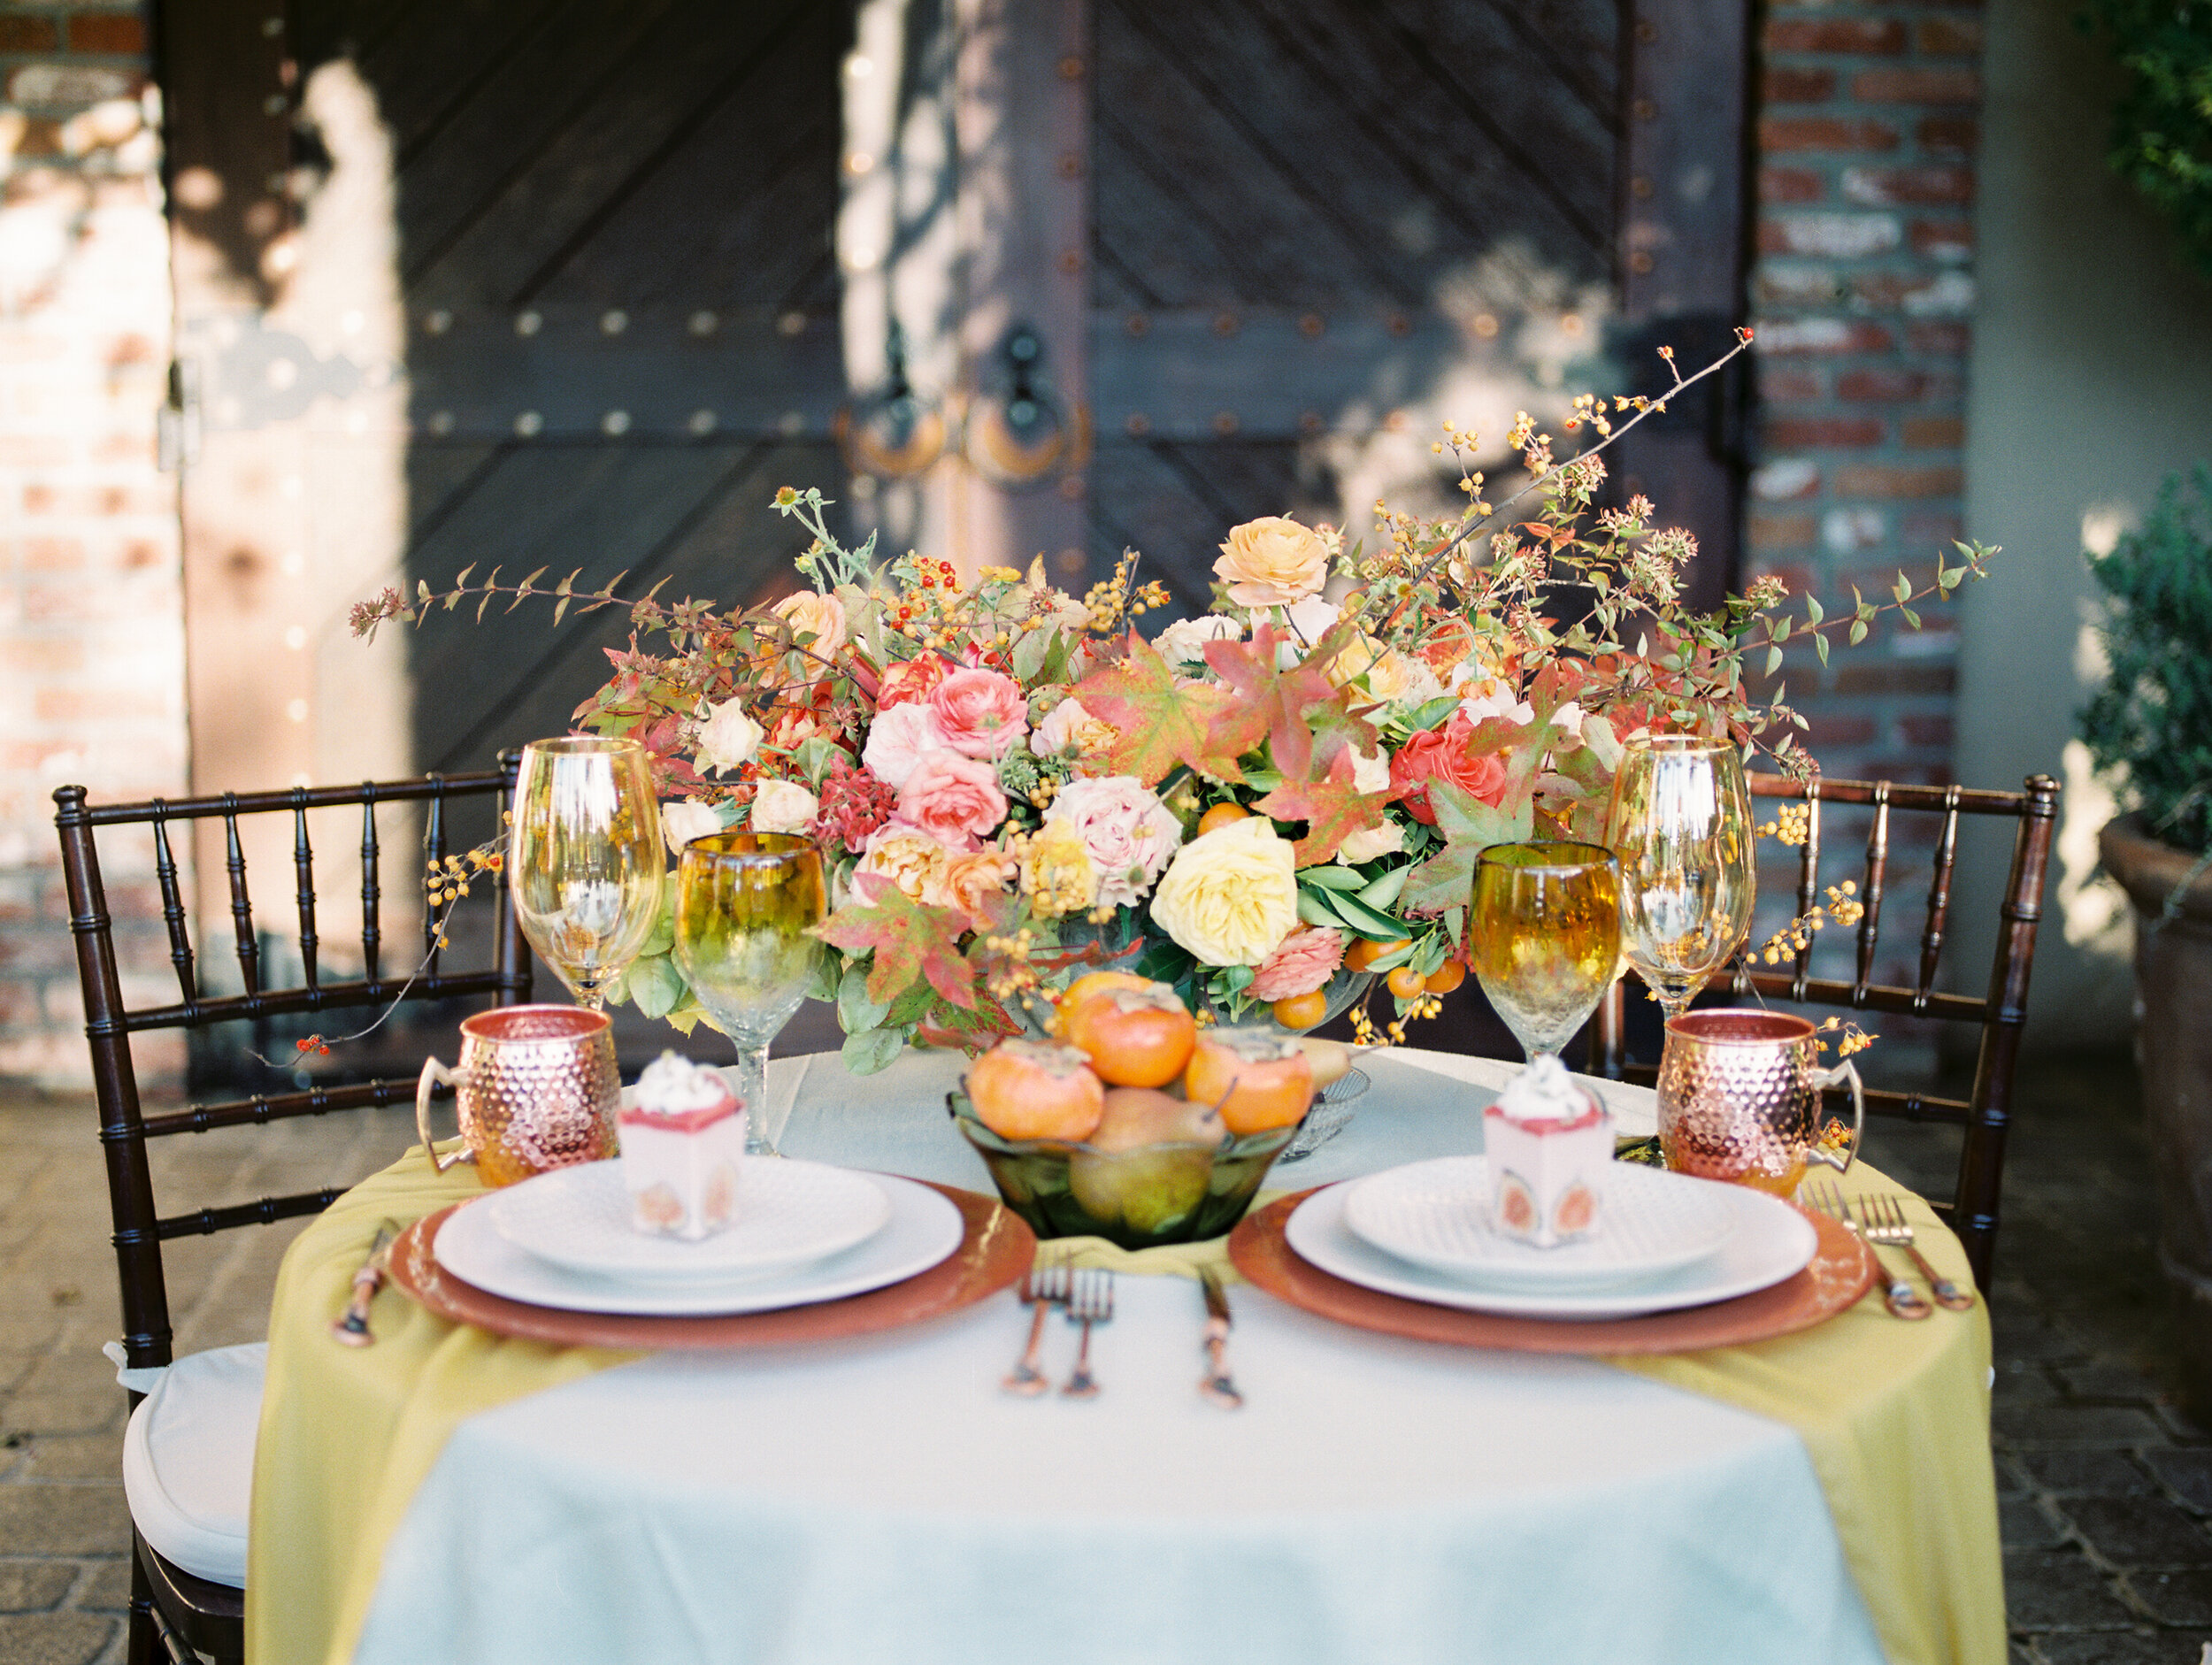 beautiful outdoor fall wedding tablescape inspo with gorgepus table linens